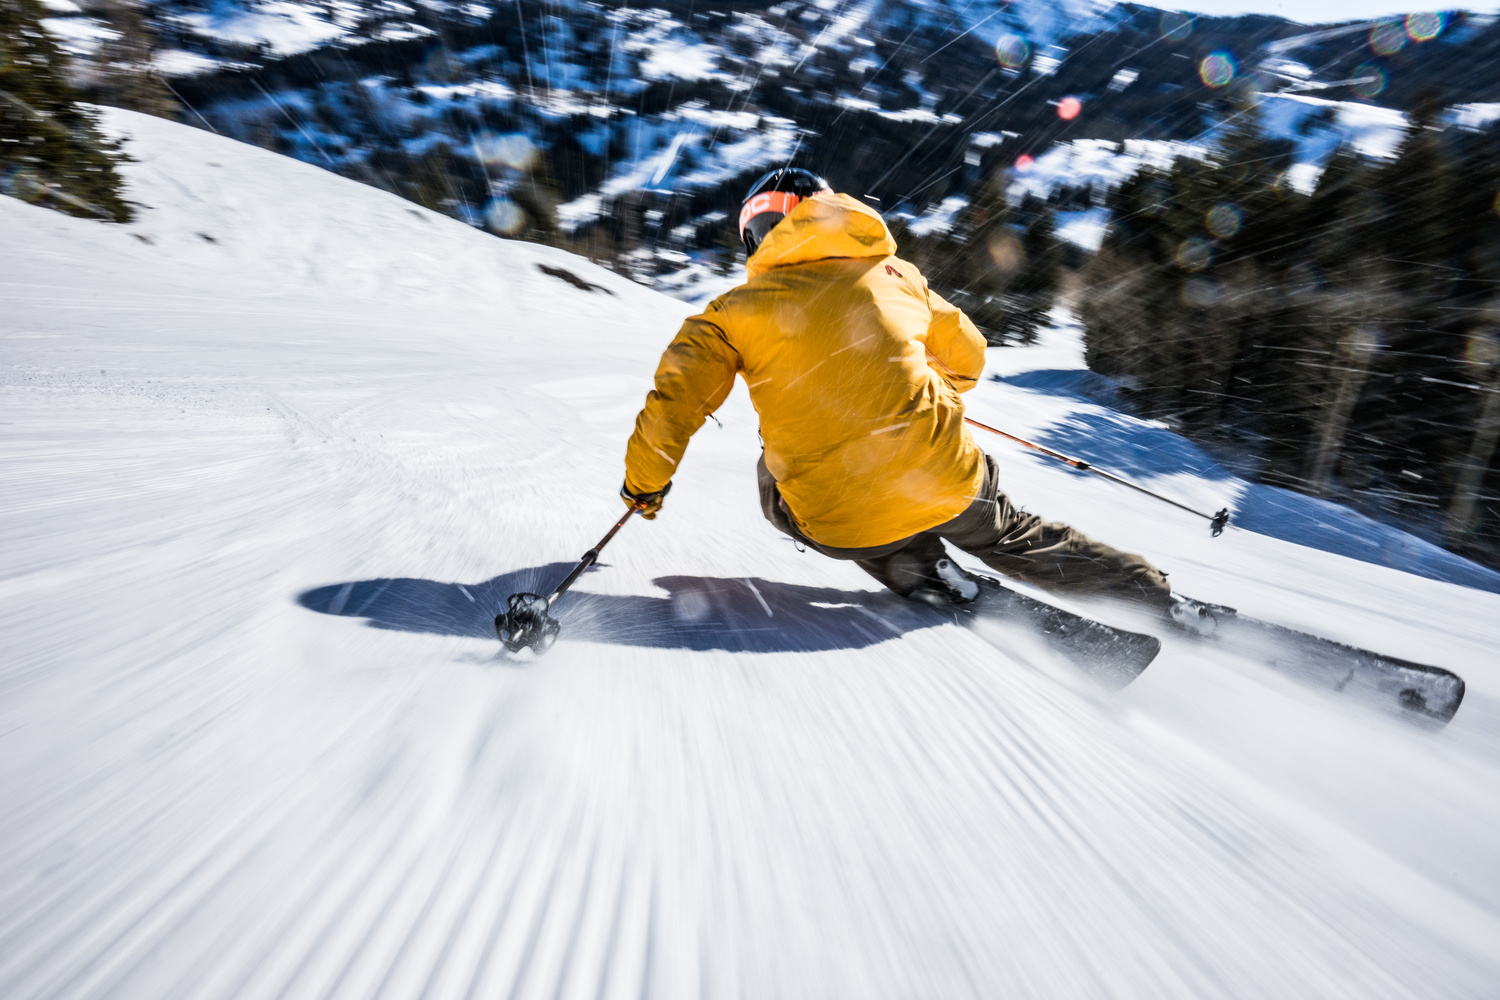 Ski for Speed by Cam McLeod